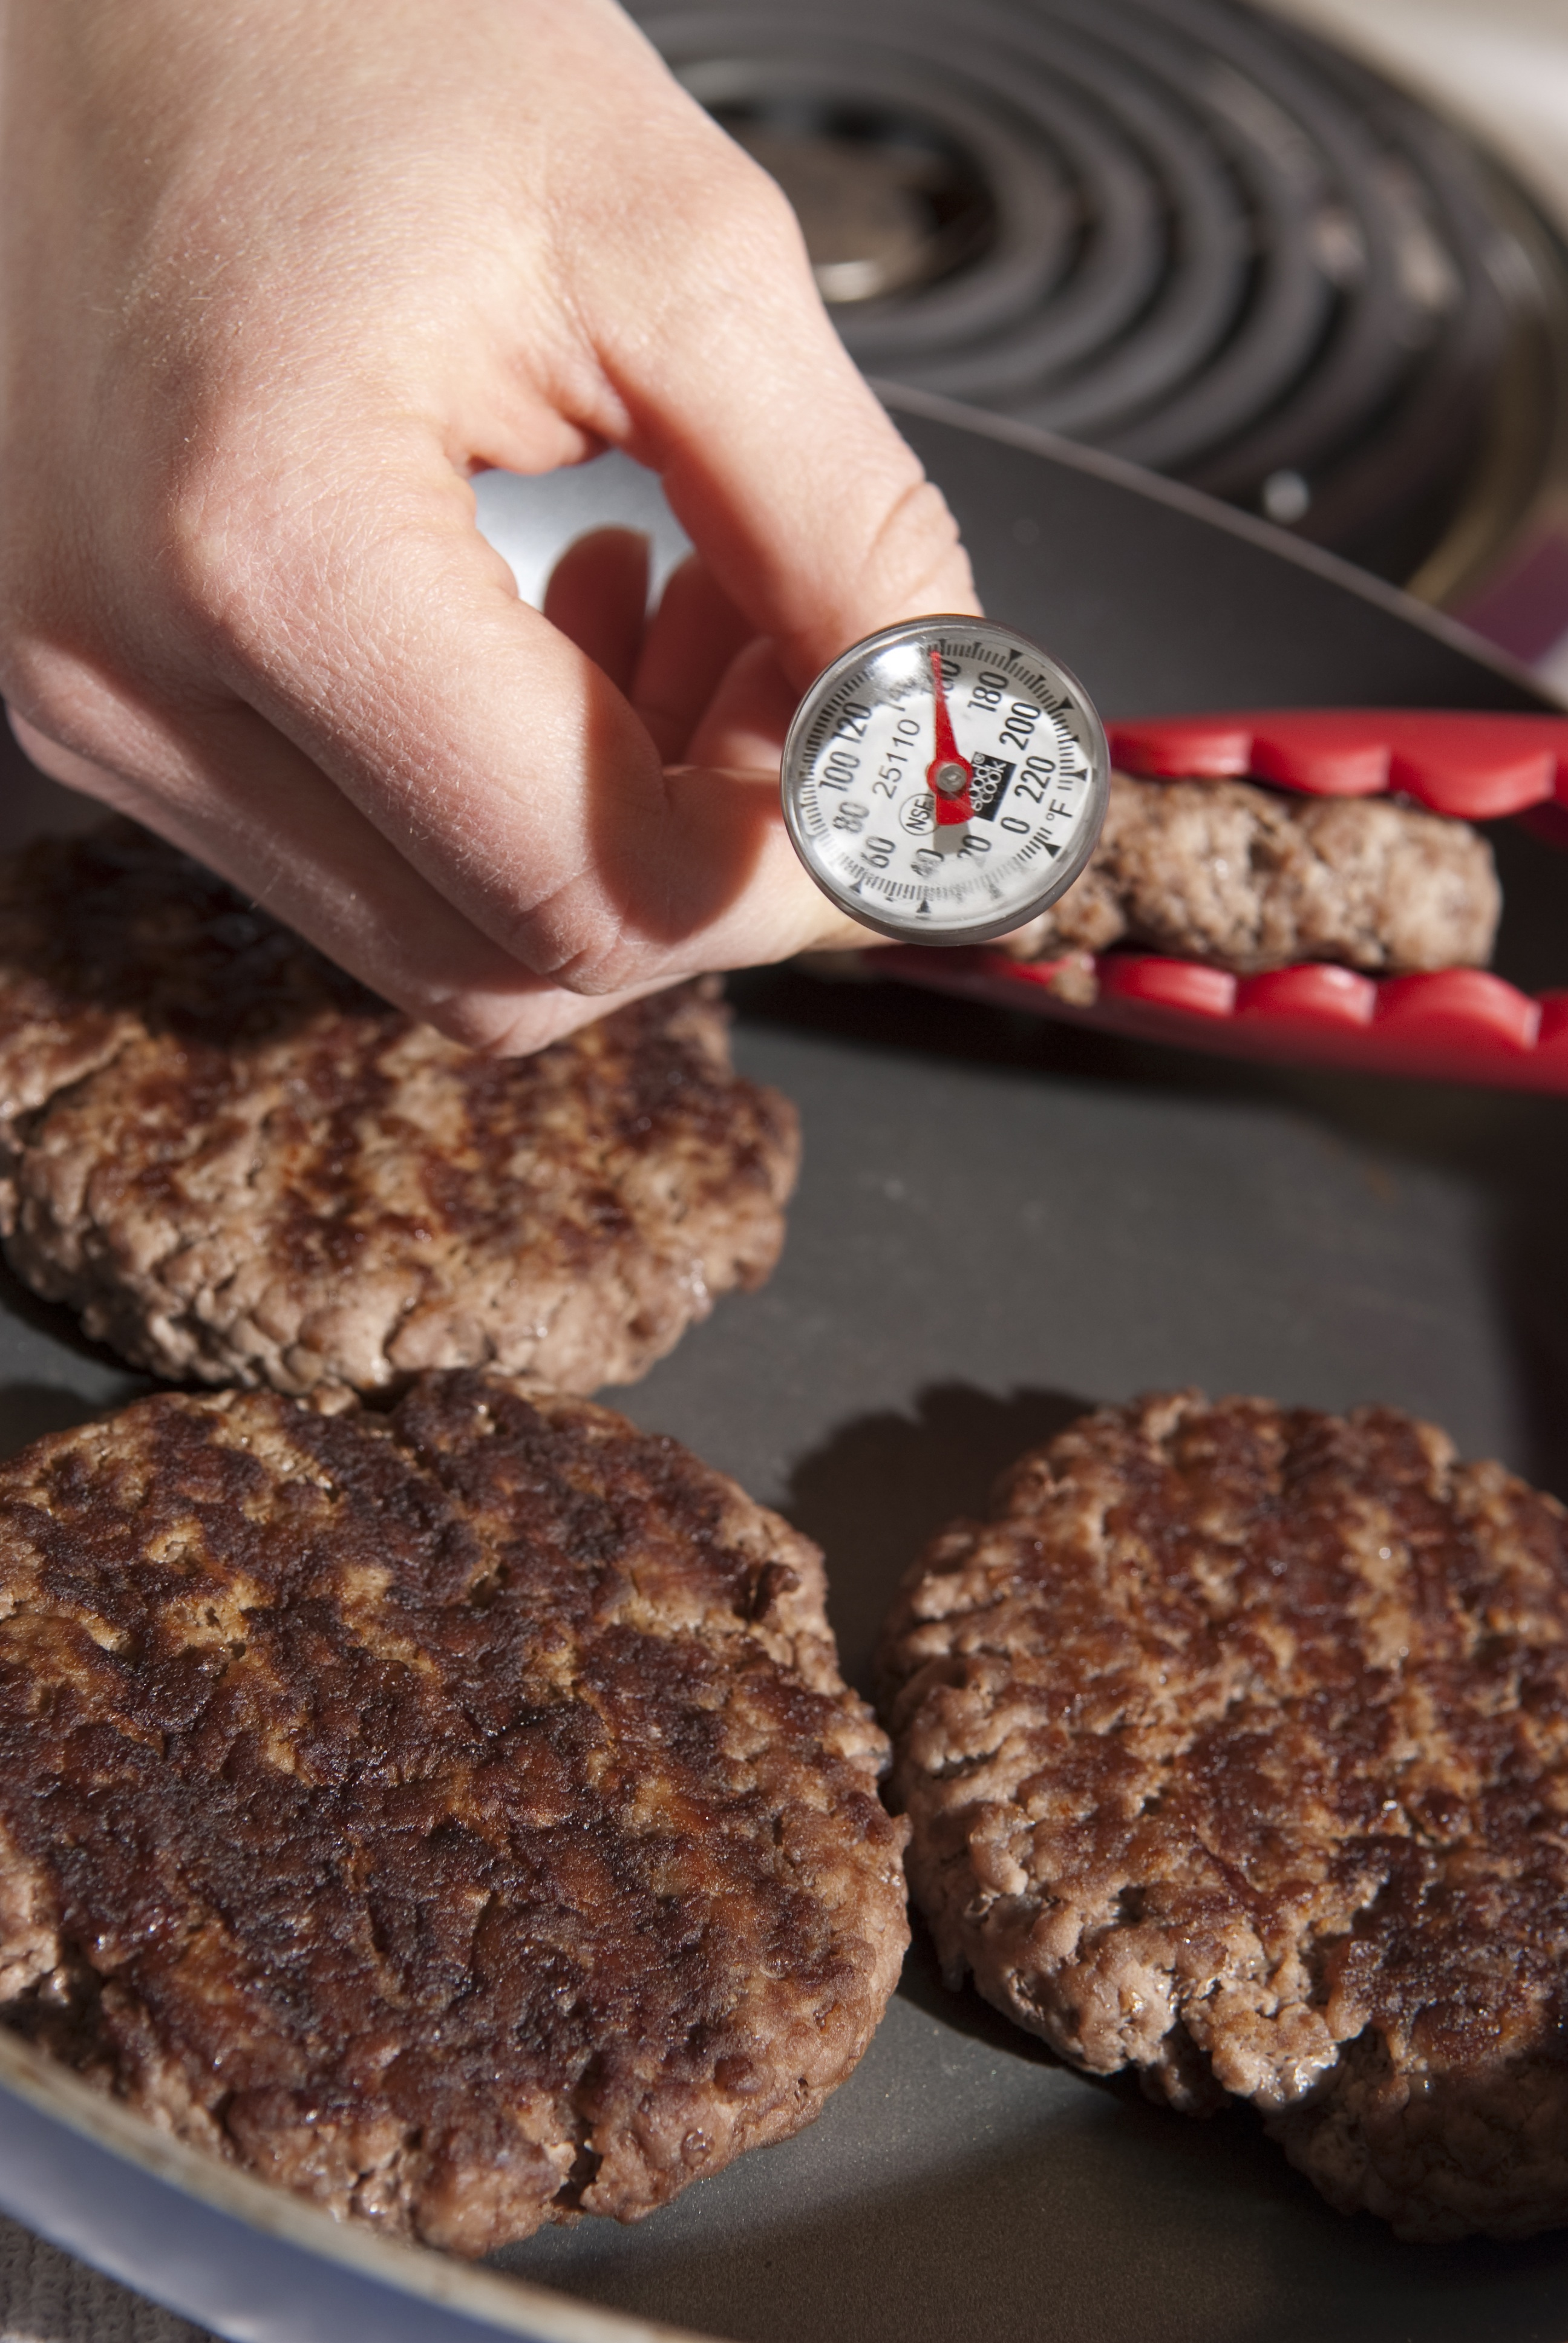 How long to cook a burger on frying pan howsto co for How long to cook turkey burgers in oven at 400